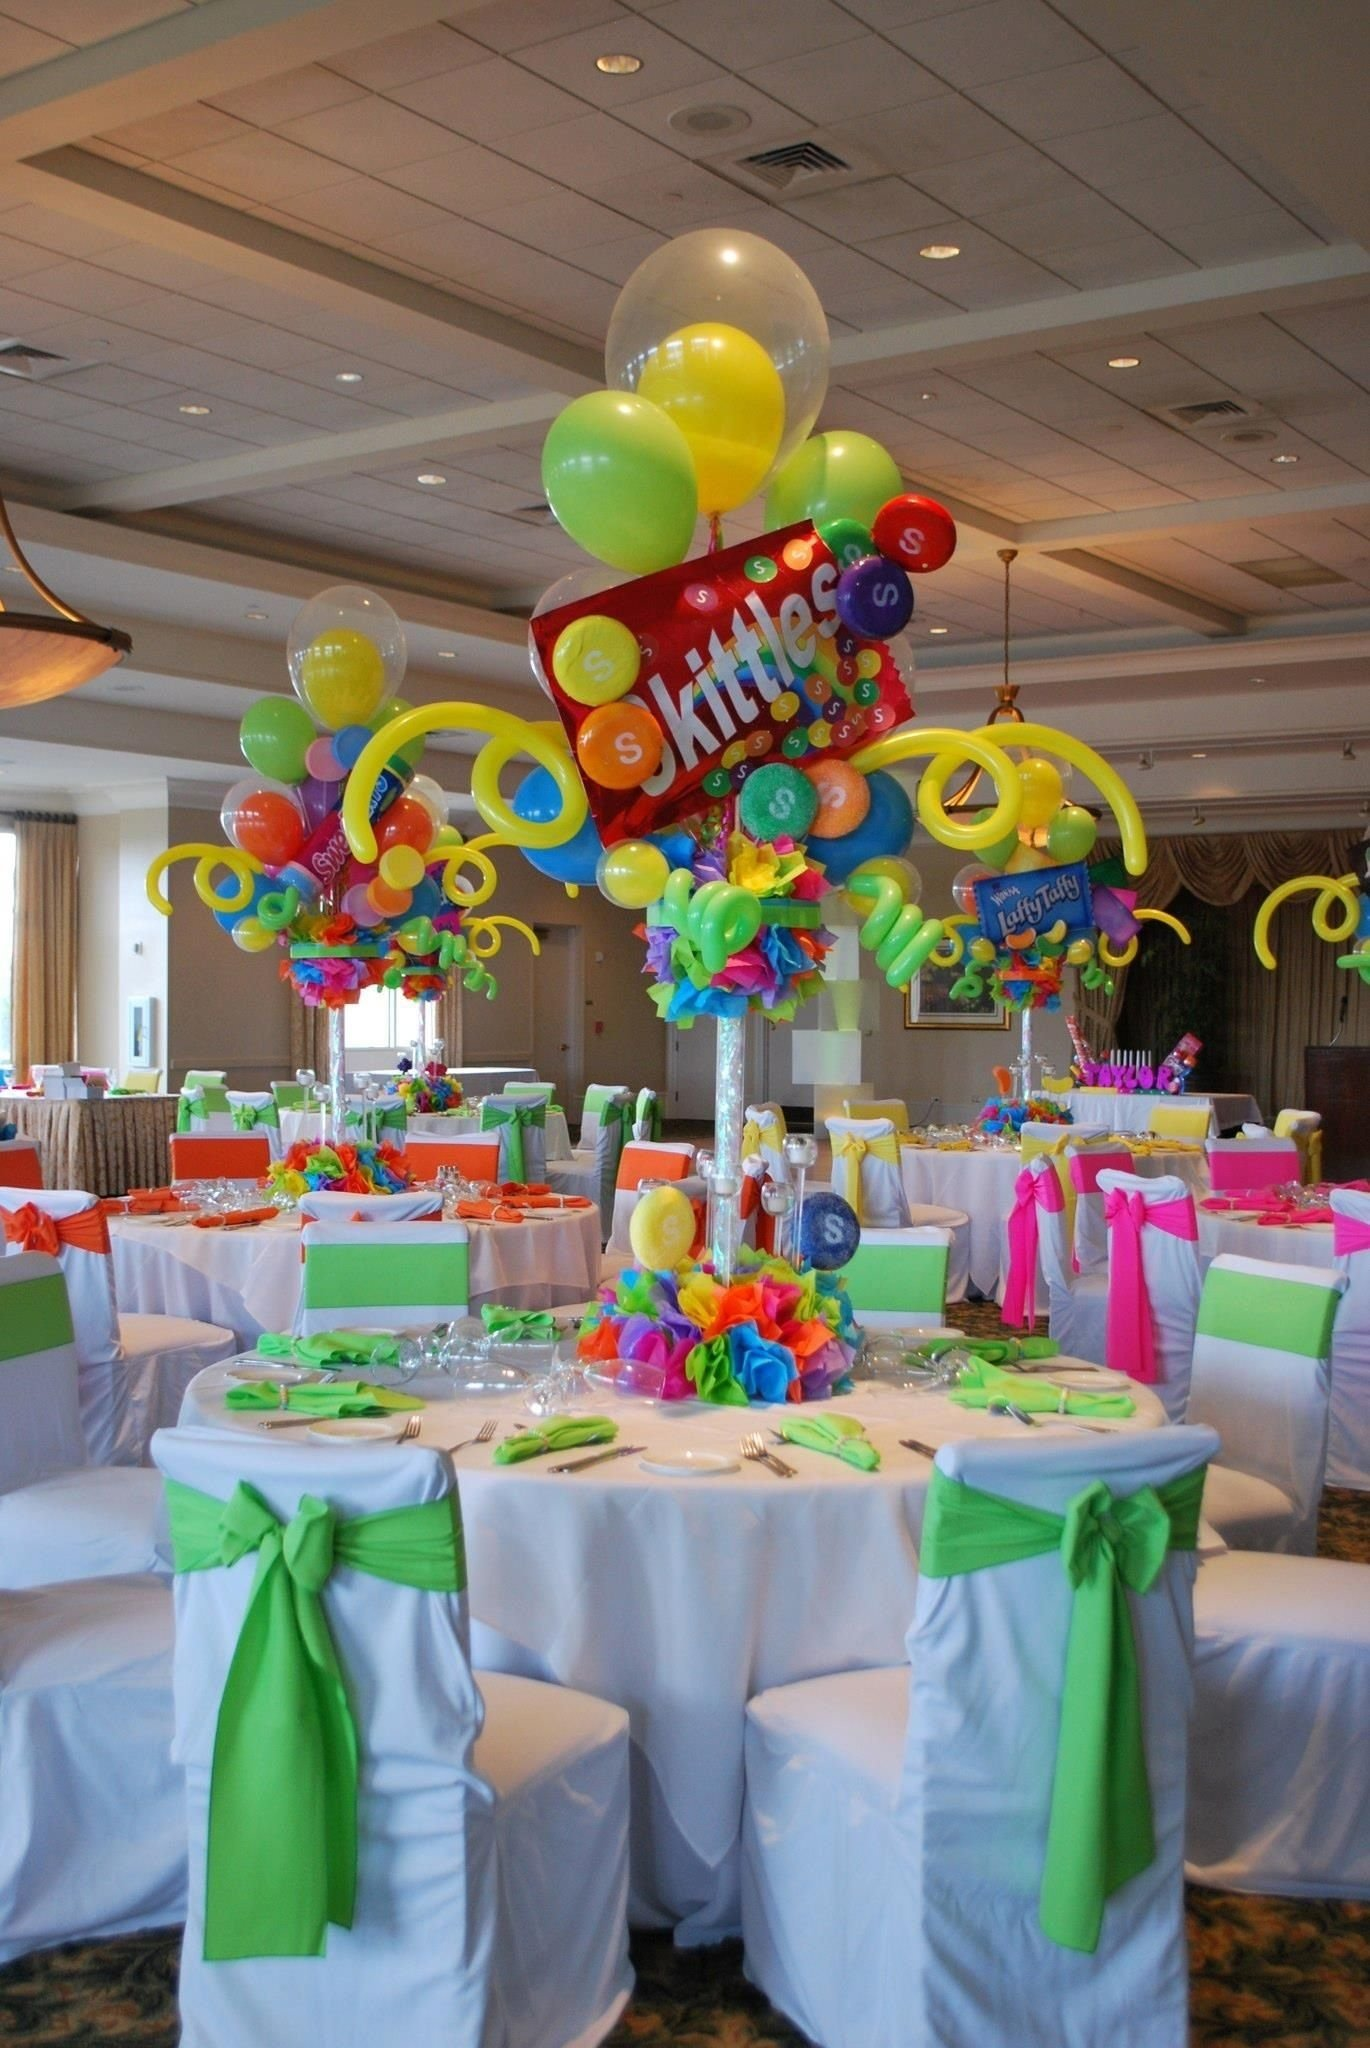 10 Fabulous Themed Birthday Party Ideas For Adults candy themed bat mitzvah event decor adult centerpieces party 3